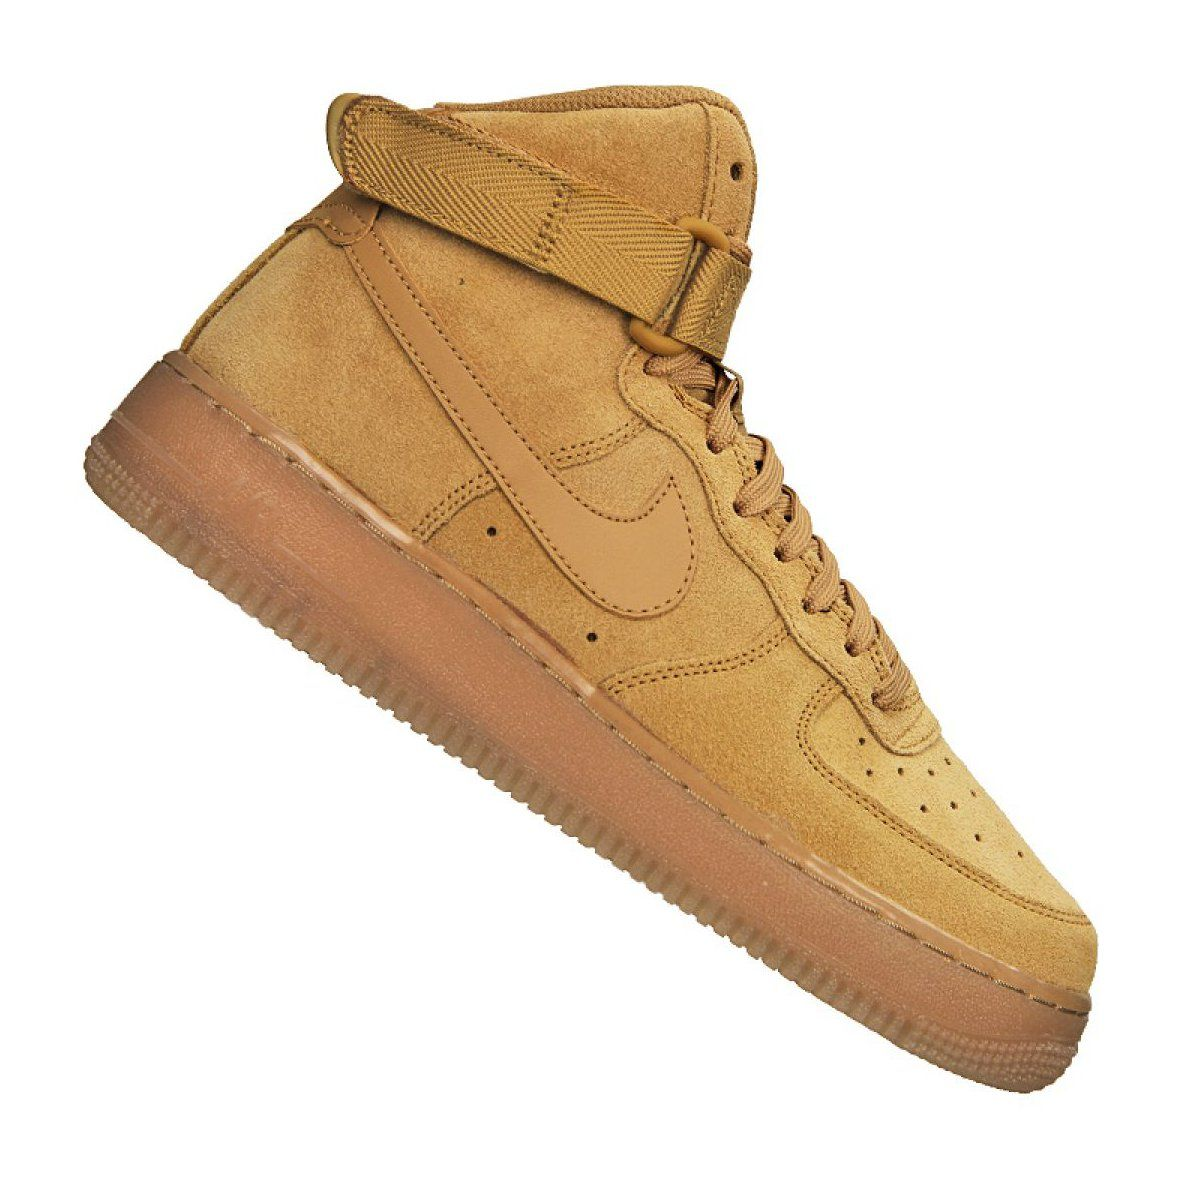 Nike Air Force 1 High LV8 Gs Jr CK0262 700 shoes brown